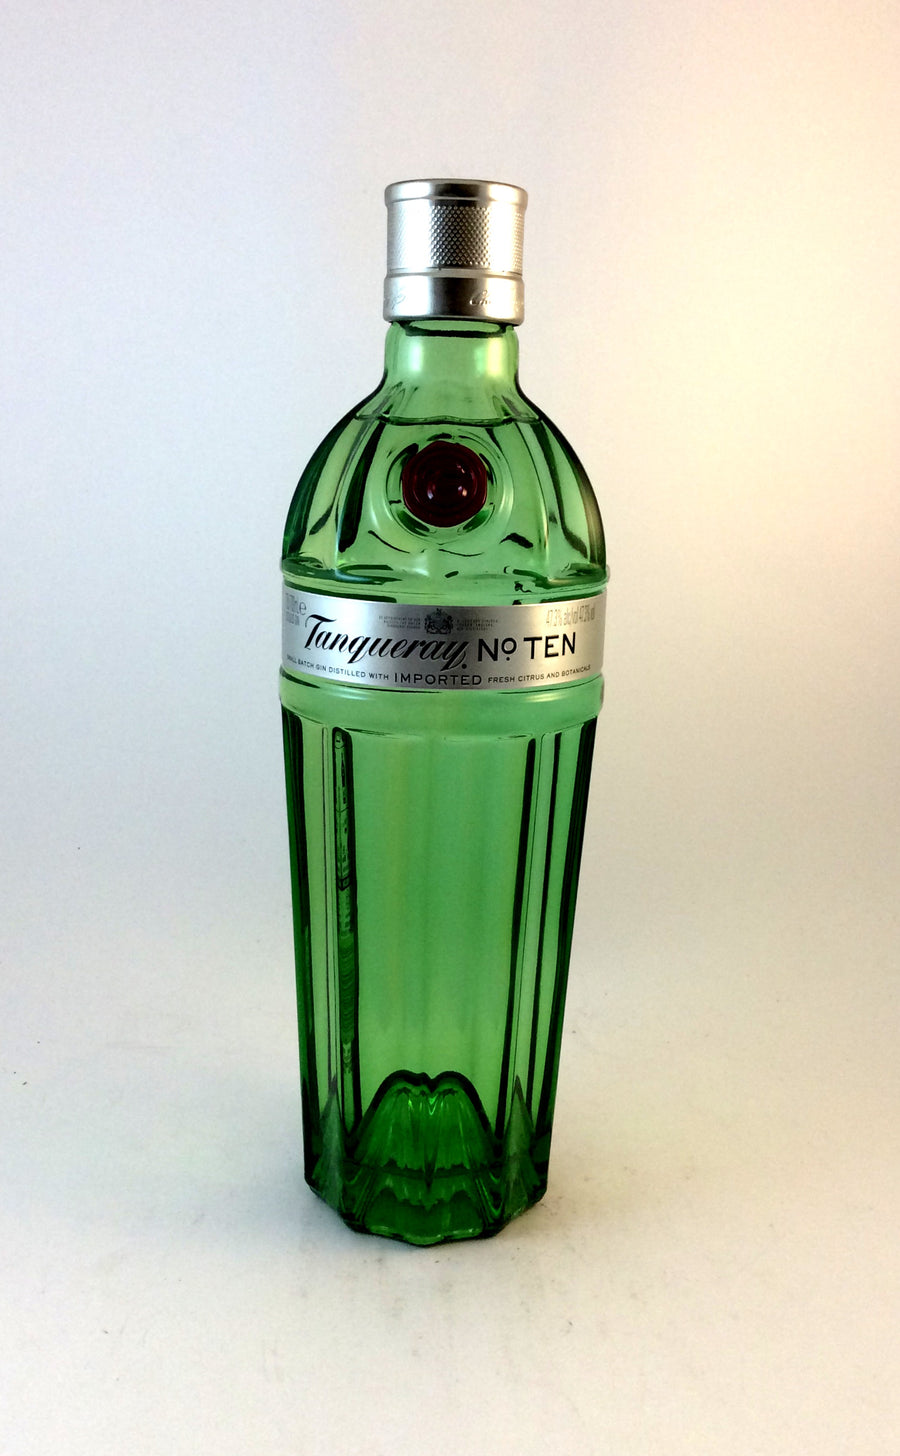 Tanqueray Ten Gin - Wineseeker